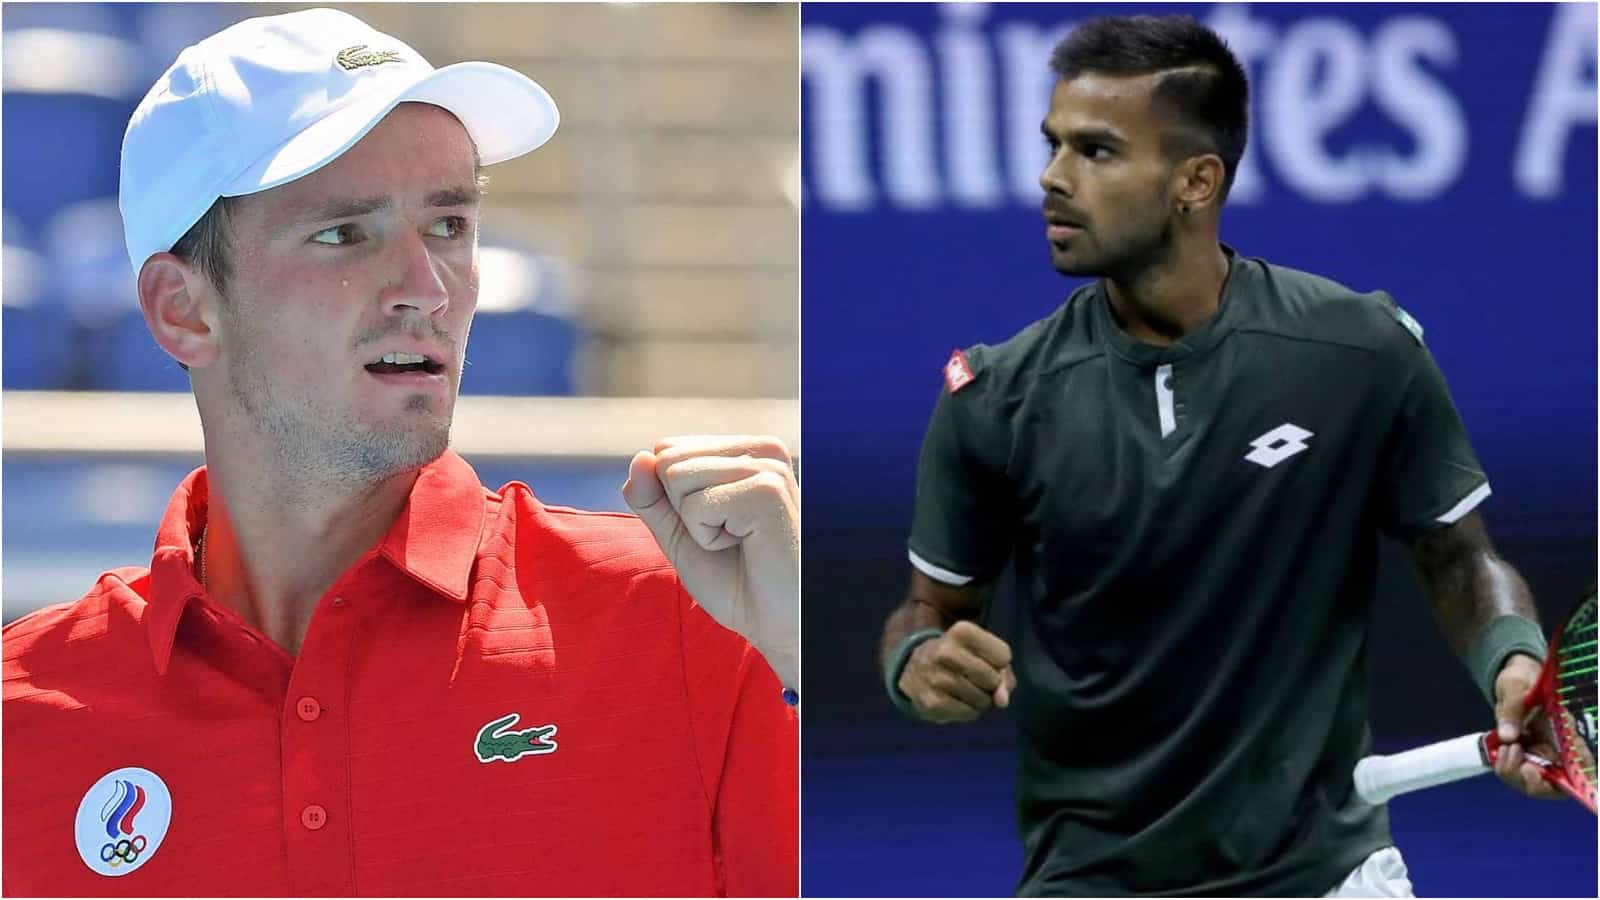 Tennis at Tokyo Olympics 2020: Daniil Medvedev vs Sumit Nagal Preview, Head to Head and Prediction » FirstSportz